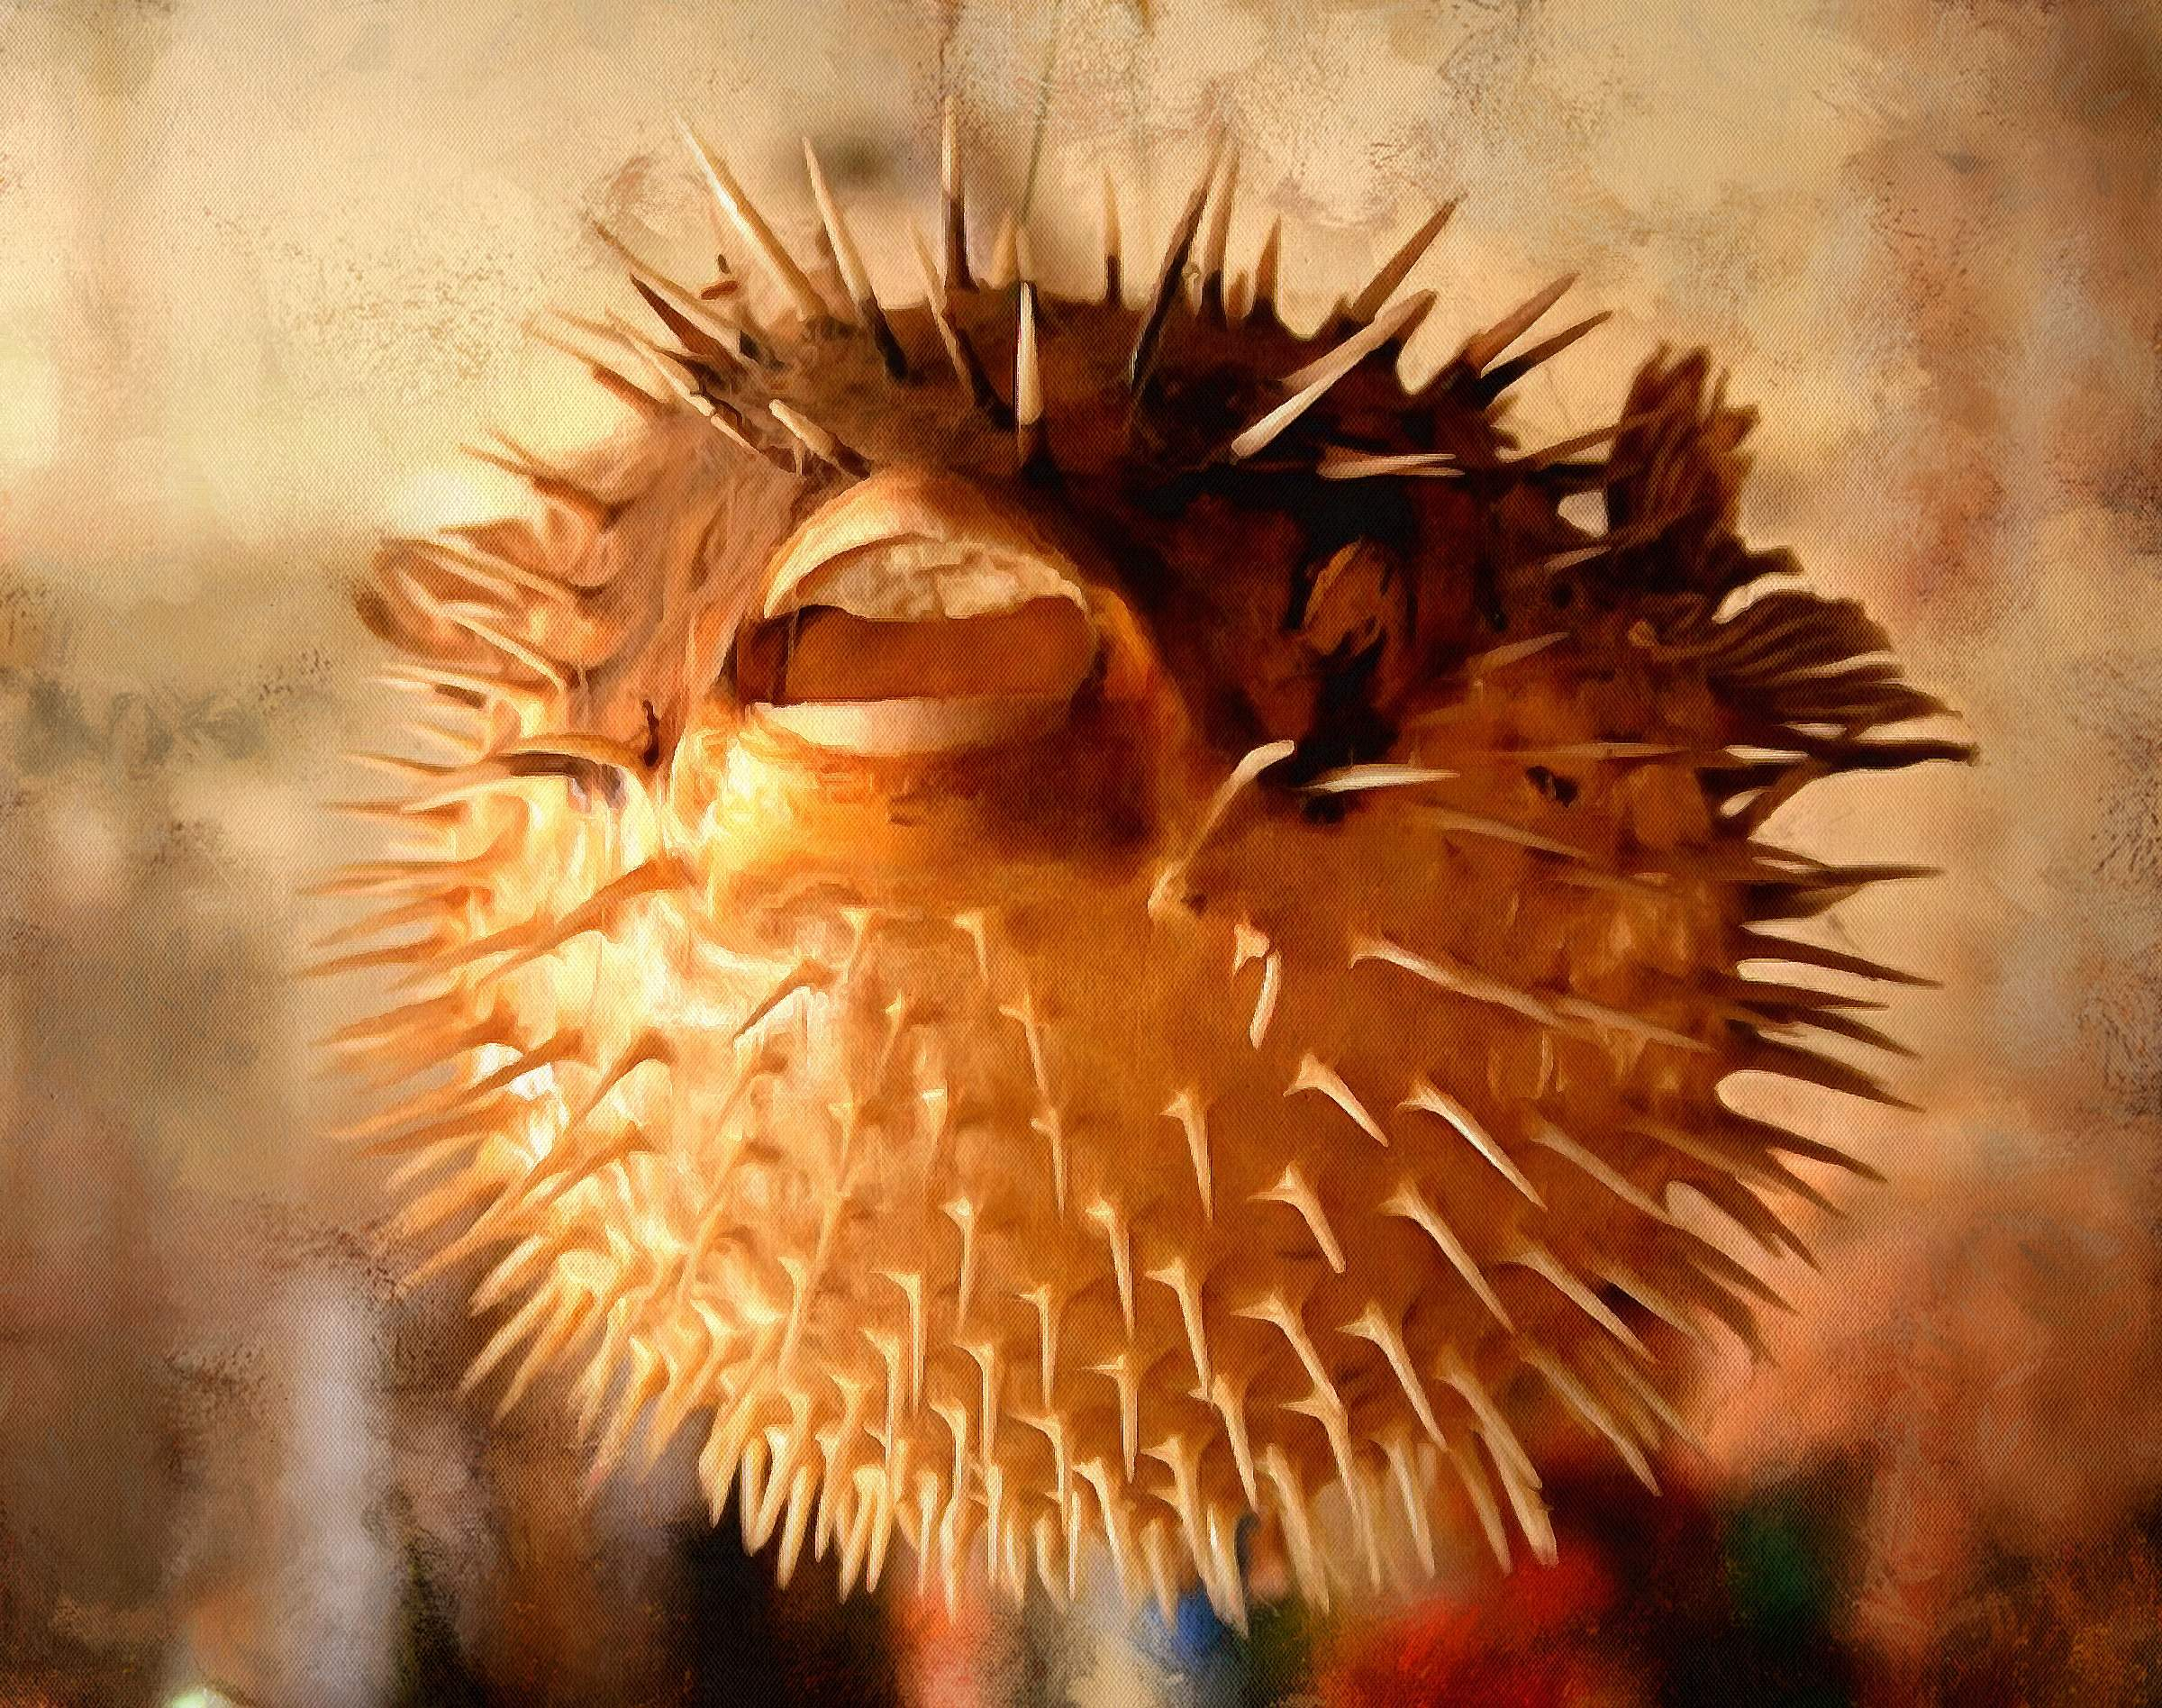 Puffer fish facts interesting facts about puffer fish for Puffer fish diet